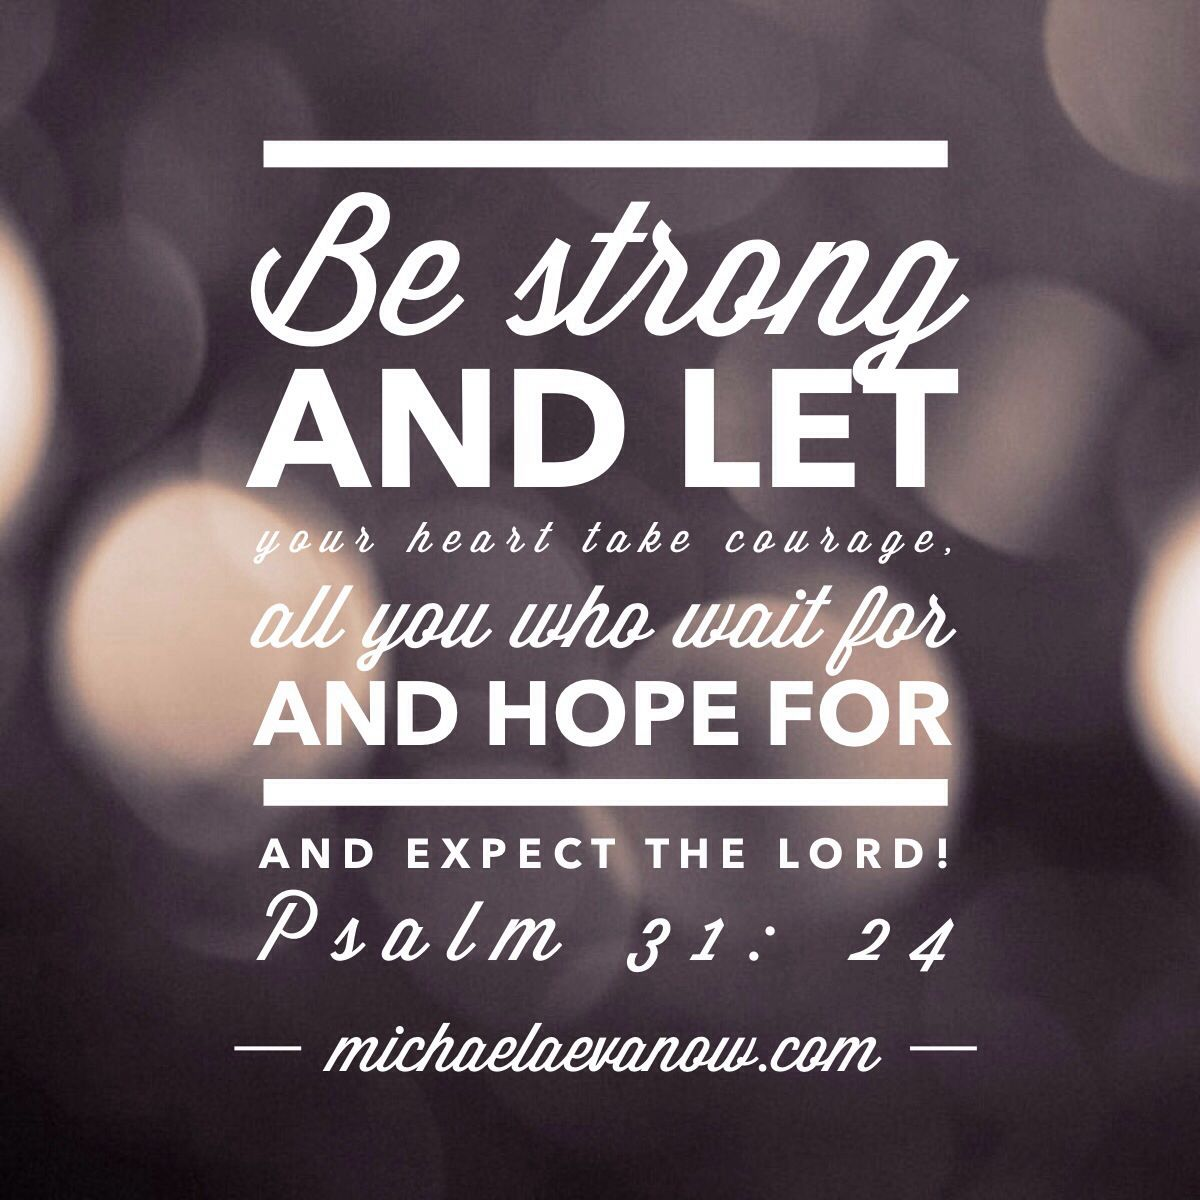 Quotes About Hope: Love This Verse & Love That I Found Michaelaevanow.com